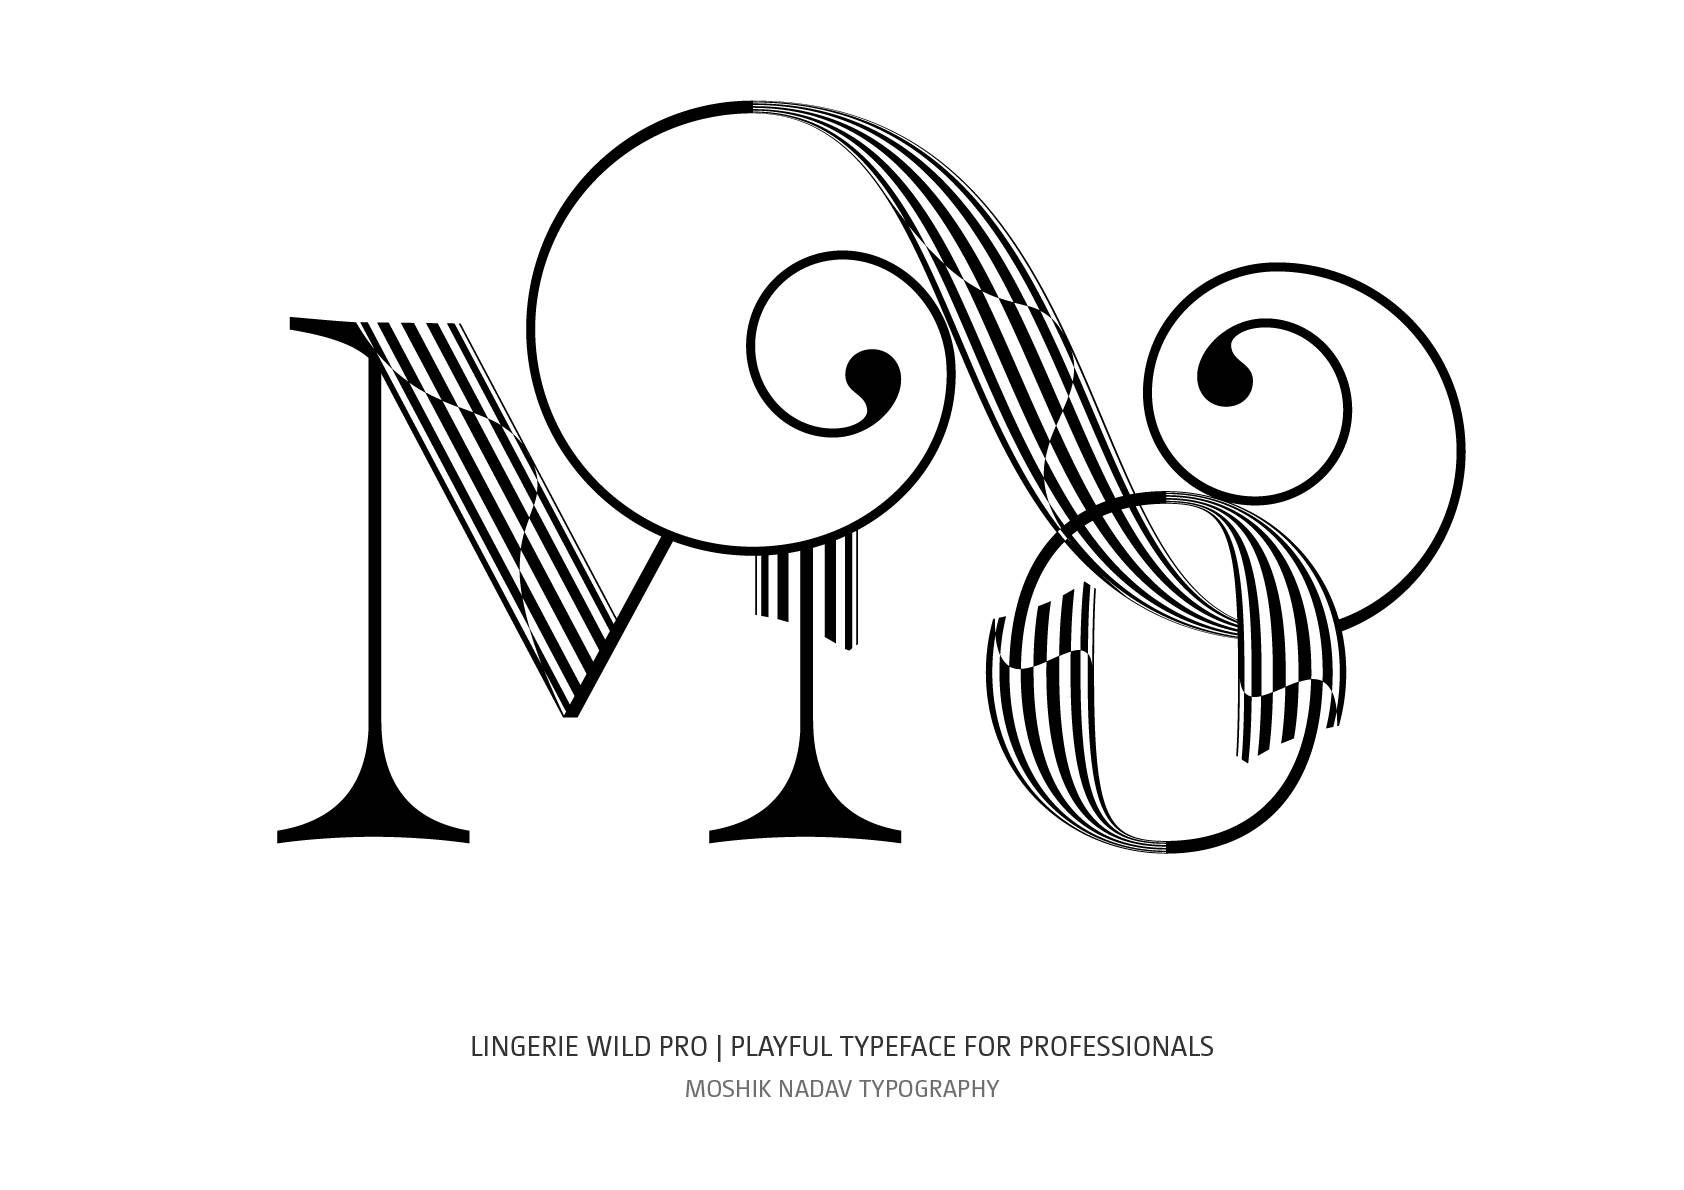 Mo ligature designed with Lingerie Wild Pro typeface new font for fashion and luxury logos